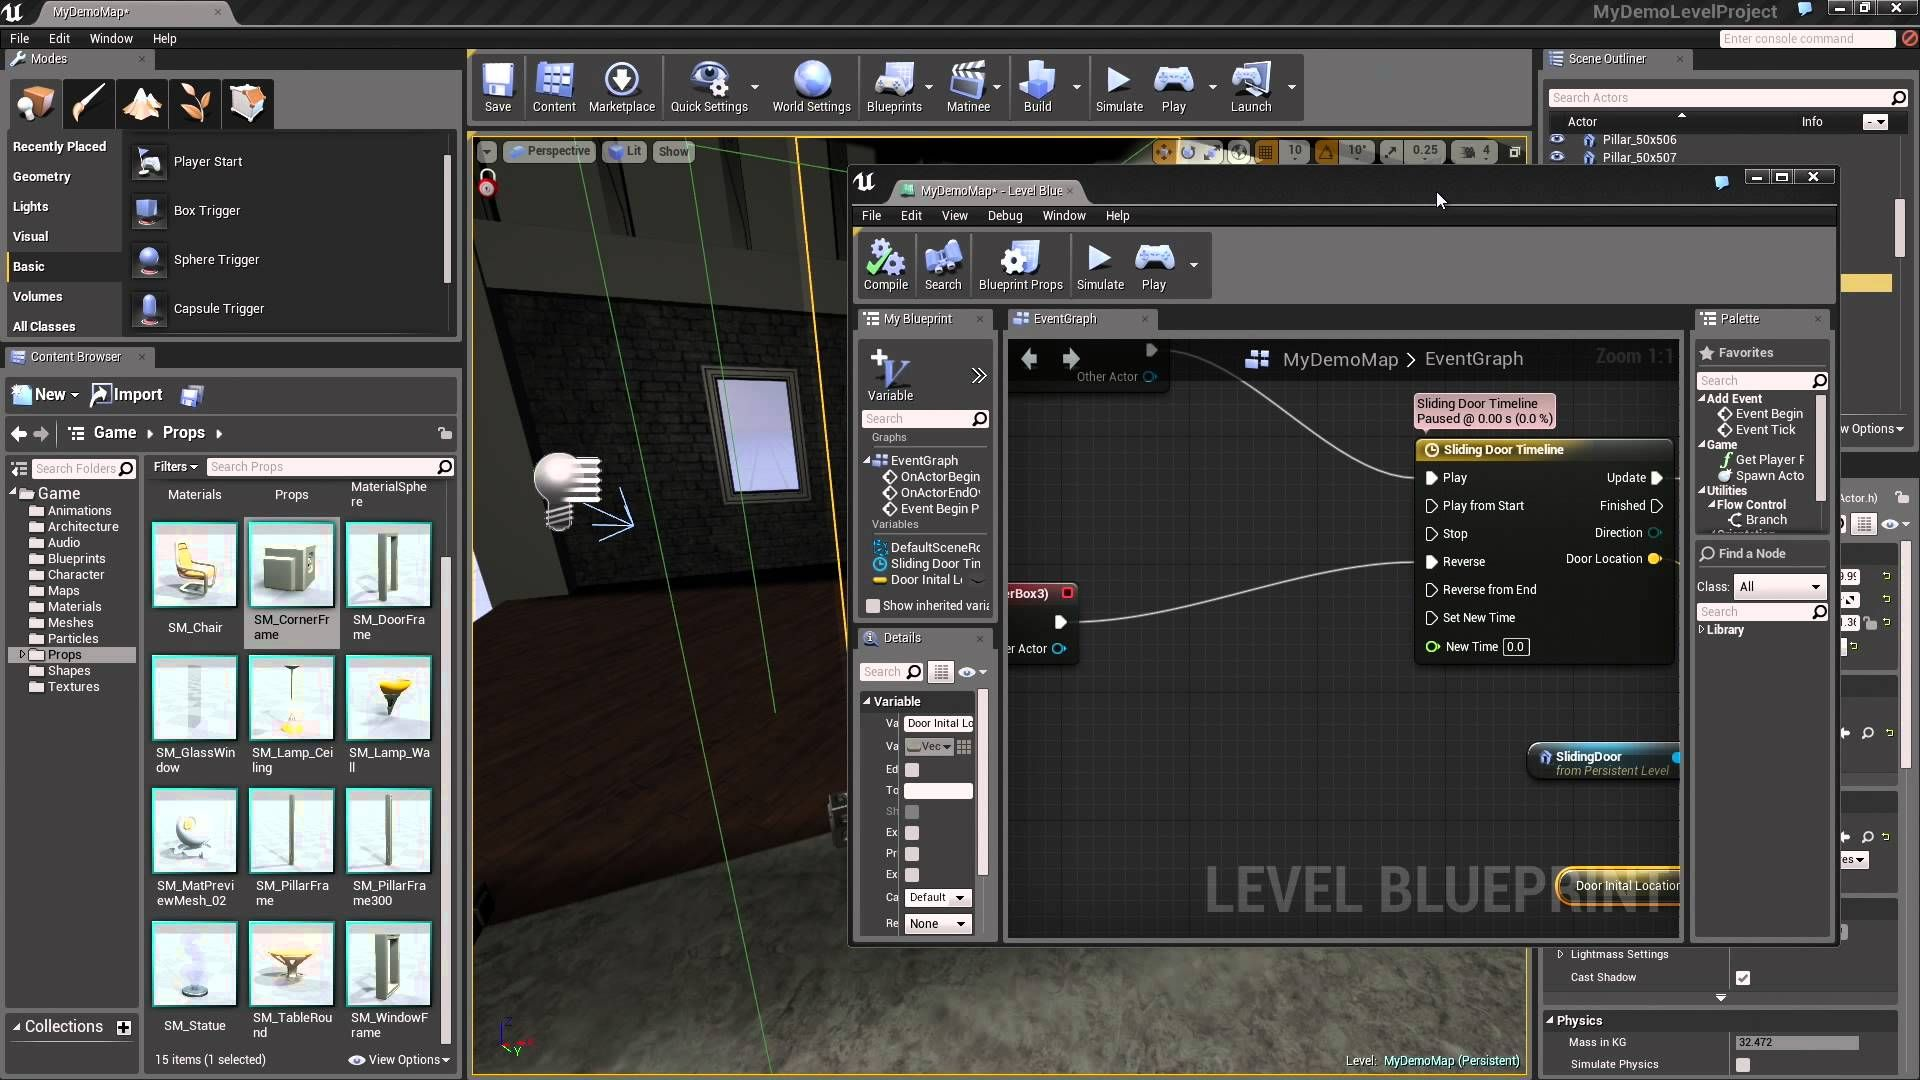 Part 2 in learning how to create an interactive sliding glass door part 2 in learning how to create an interactive sliding glass door using blueprints in ue4 malvernweather Choice Image